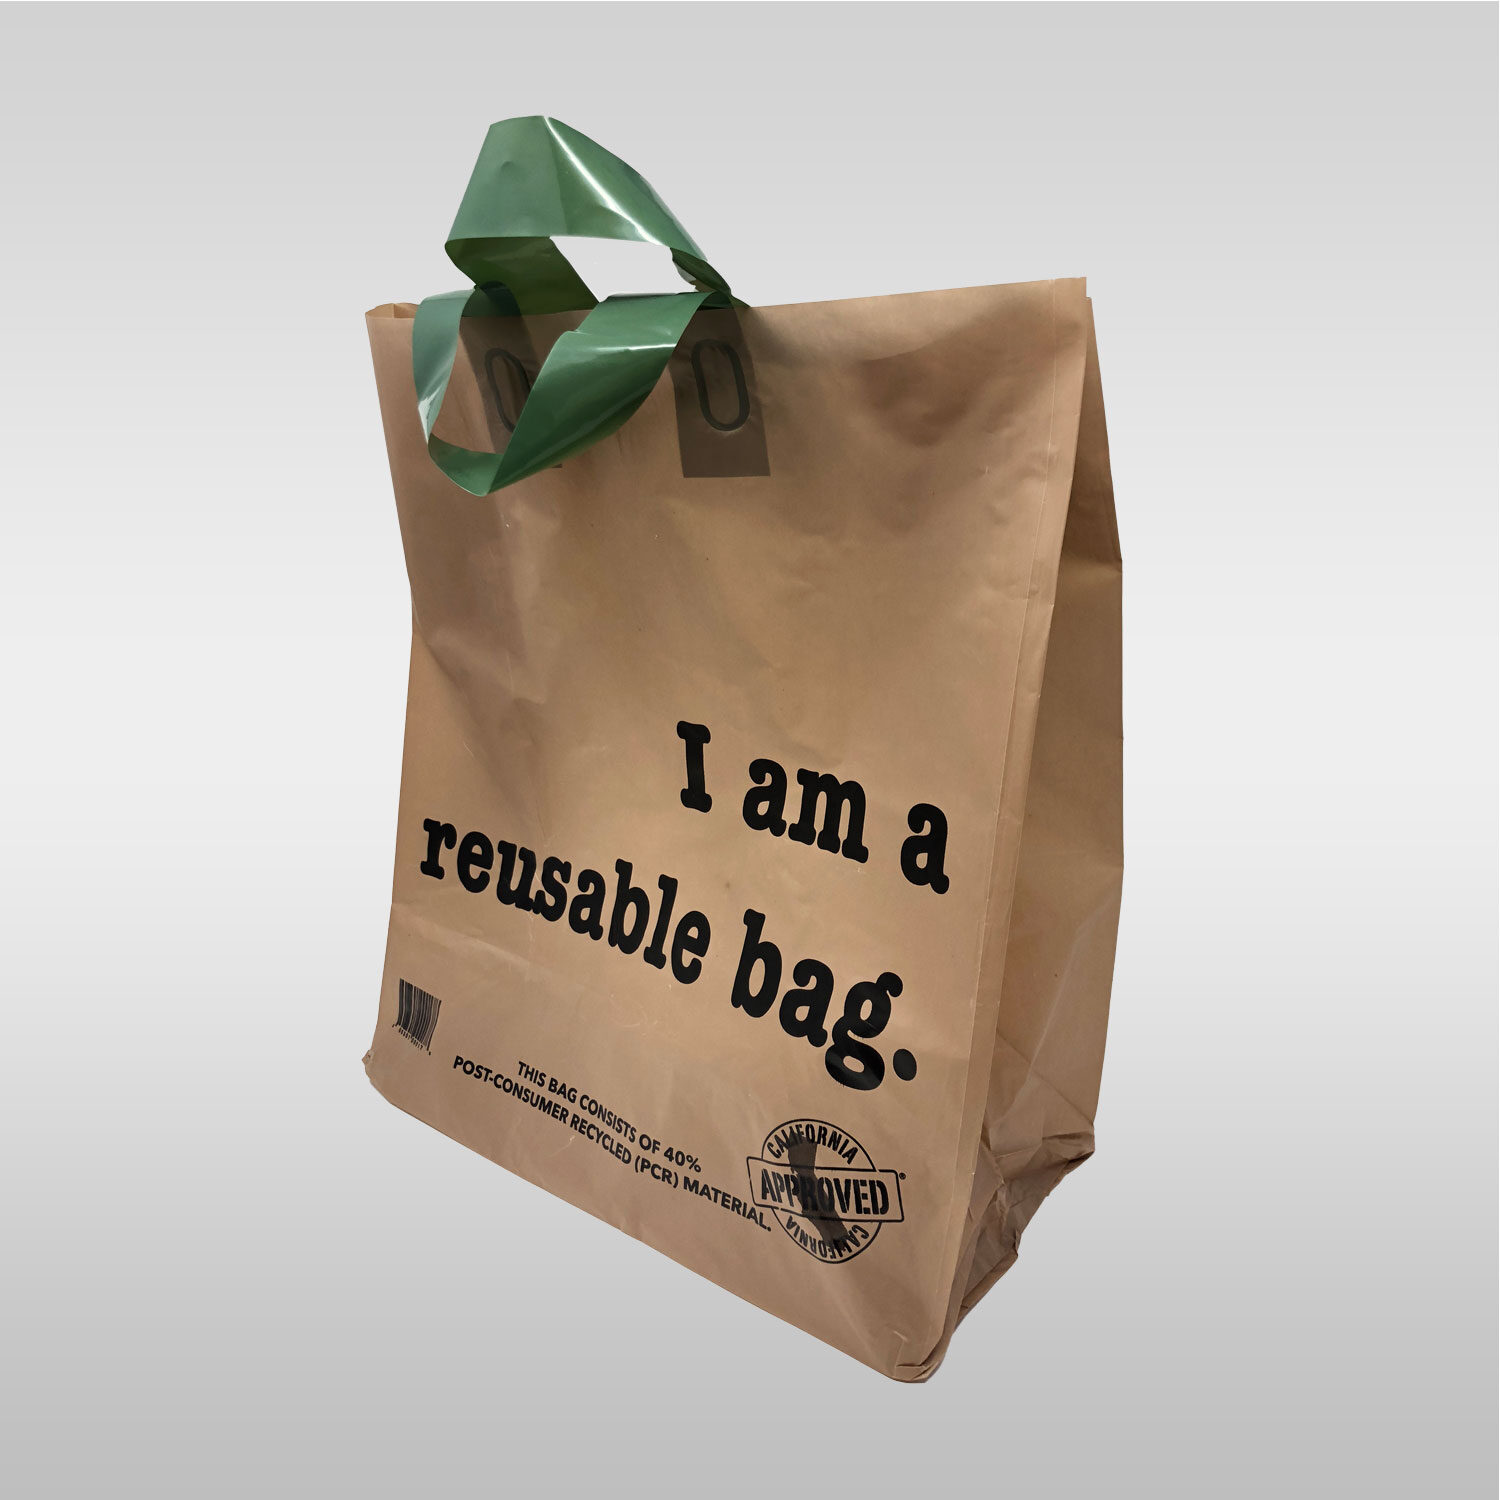 reusablebag